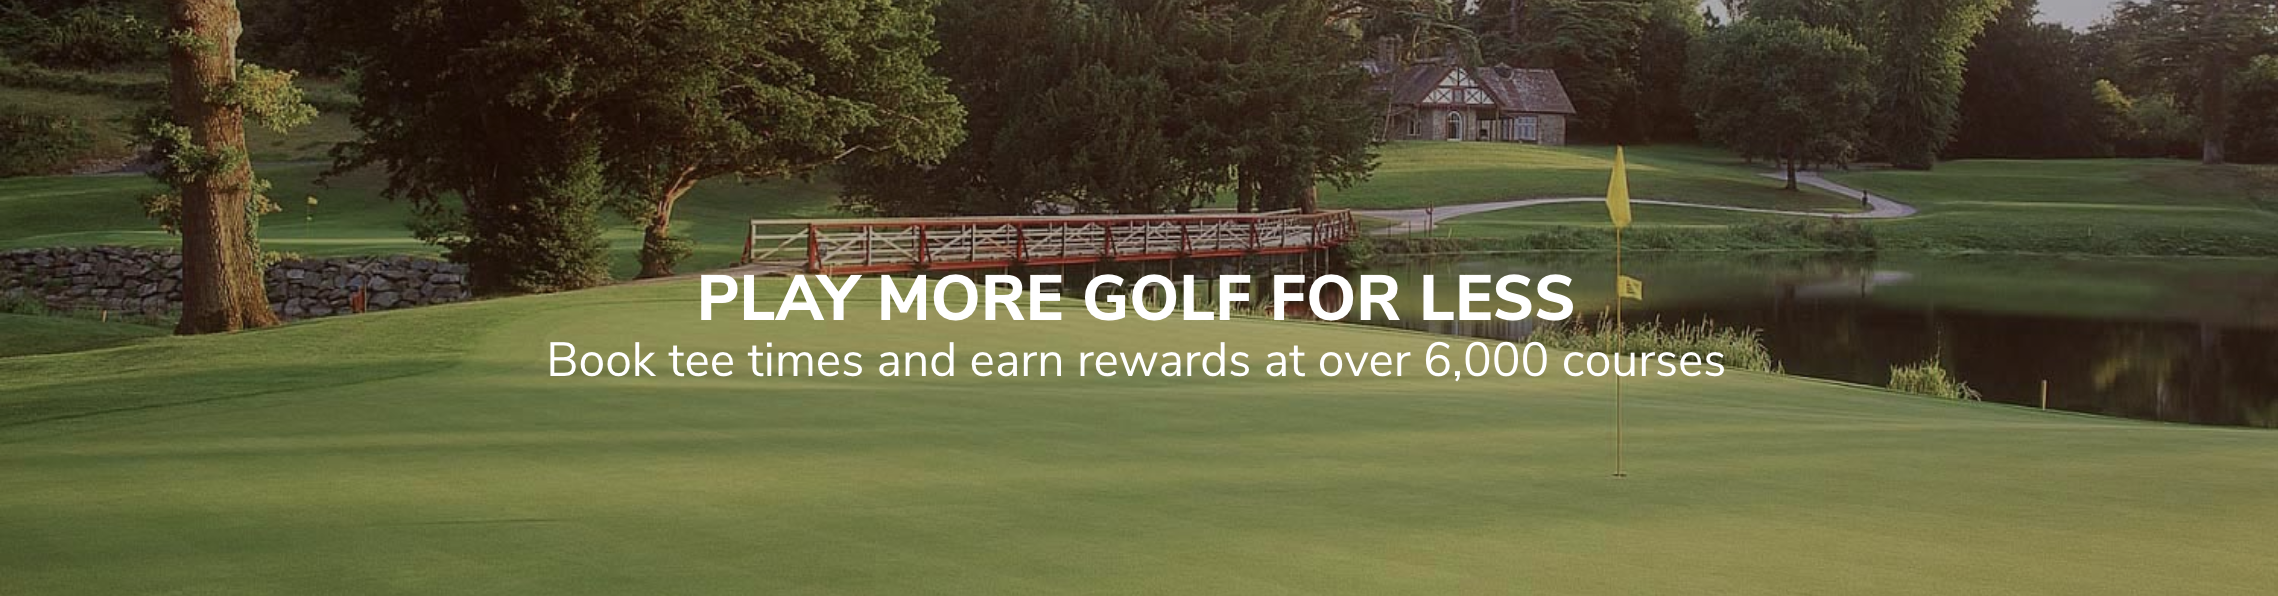 Golfnowie Official Site